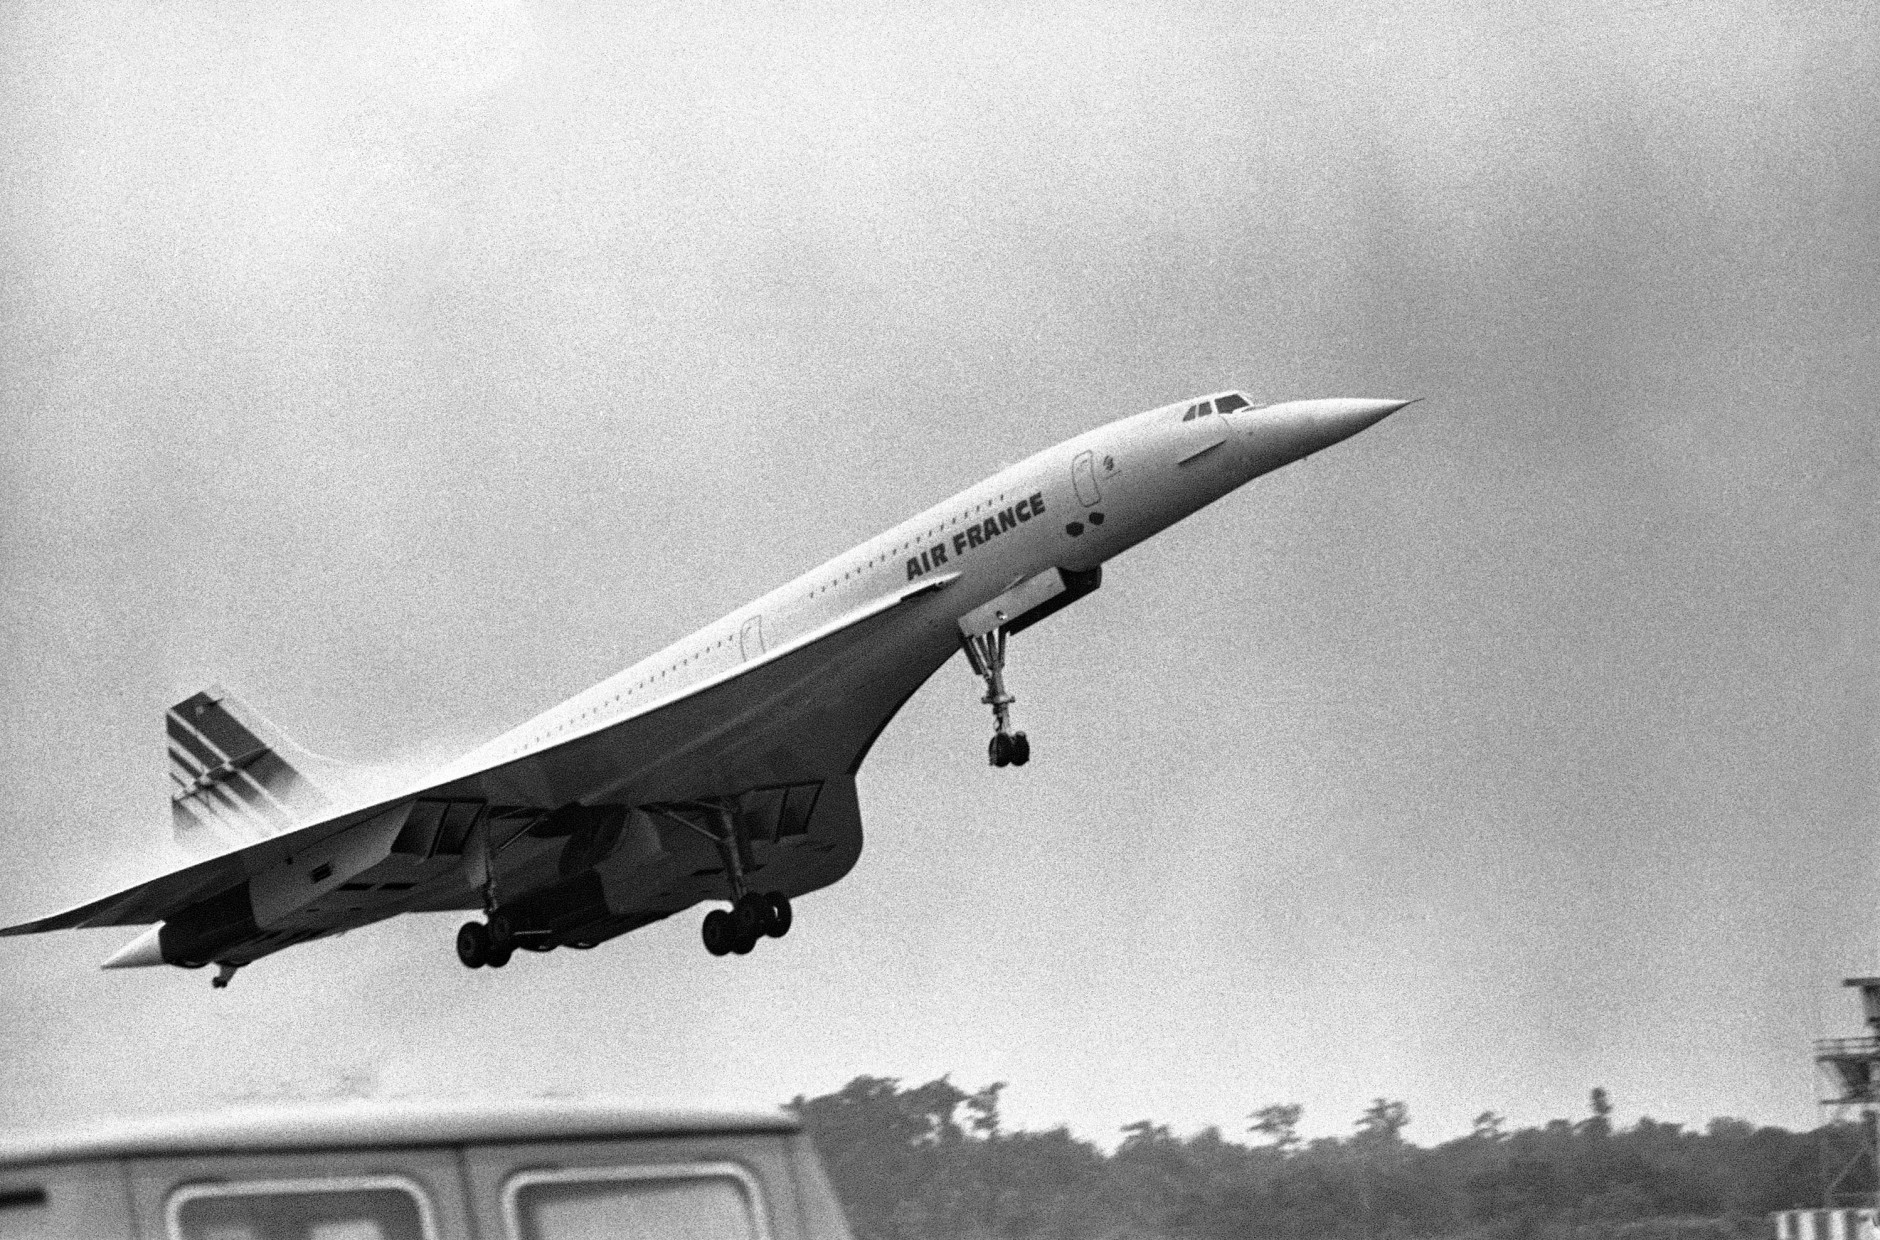 A French supersonic airliner Concorde takes off from New Orleans, Saturday, May 24, 1976, with French President Valery Giscard d'Estaing aboard returning to Paris after a US visit. Monday the controversial aircraft is scheduled to be landing at Dulles International Airport near Washington on a trial period. (AP Photo)